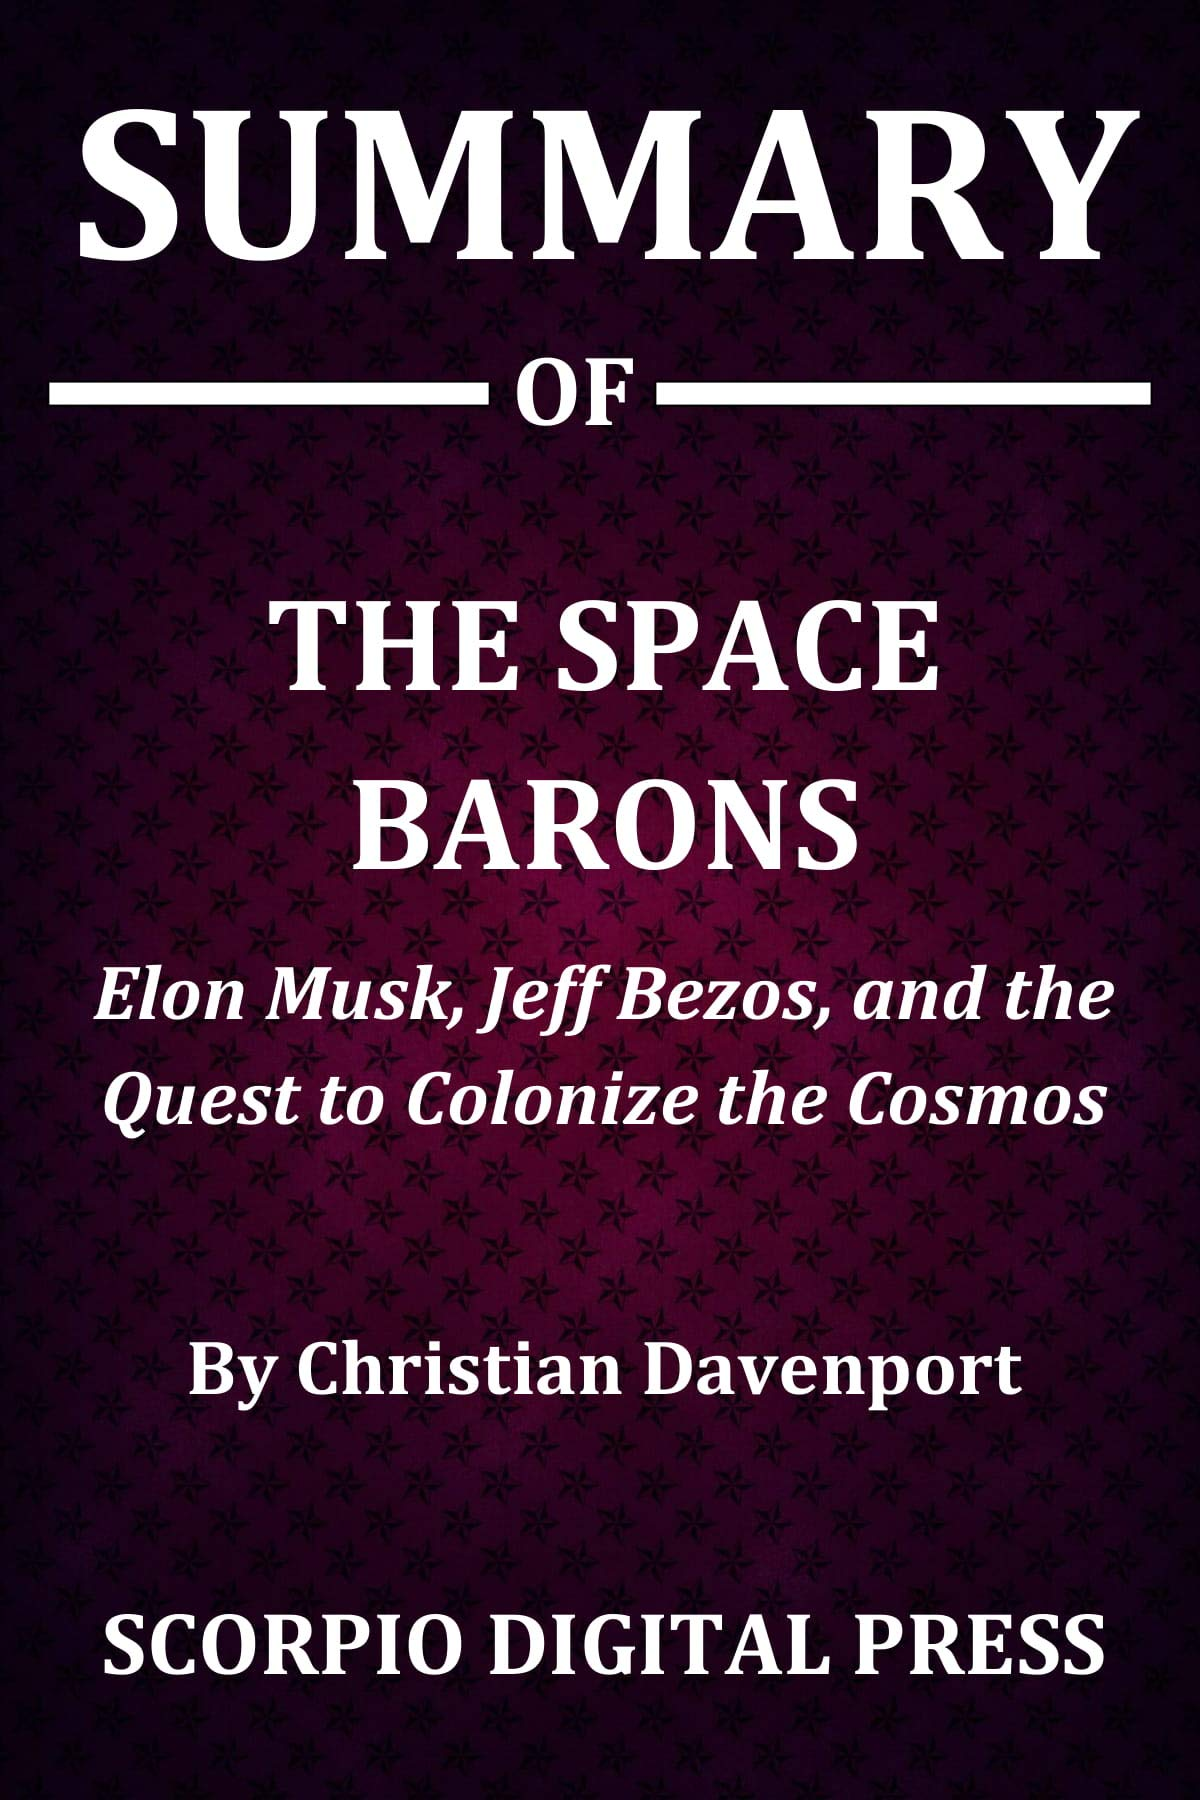 Summary Of The Space Barons : Elon Musk, Jeff Bezos, and the Quest to Colonize the Cosmos By Christian Davenport